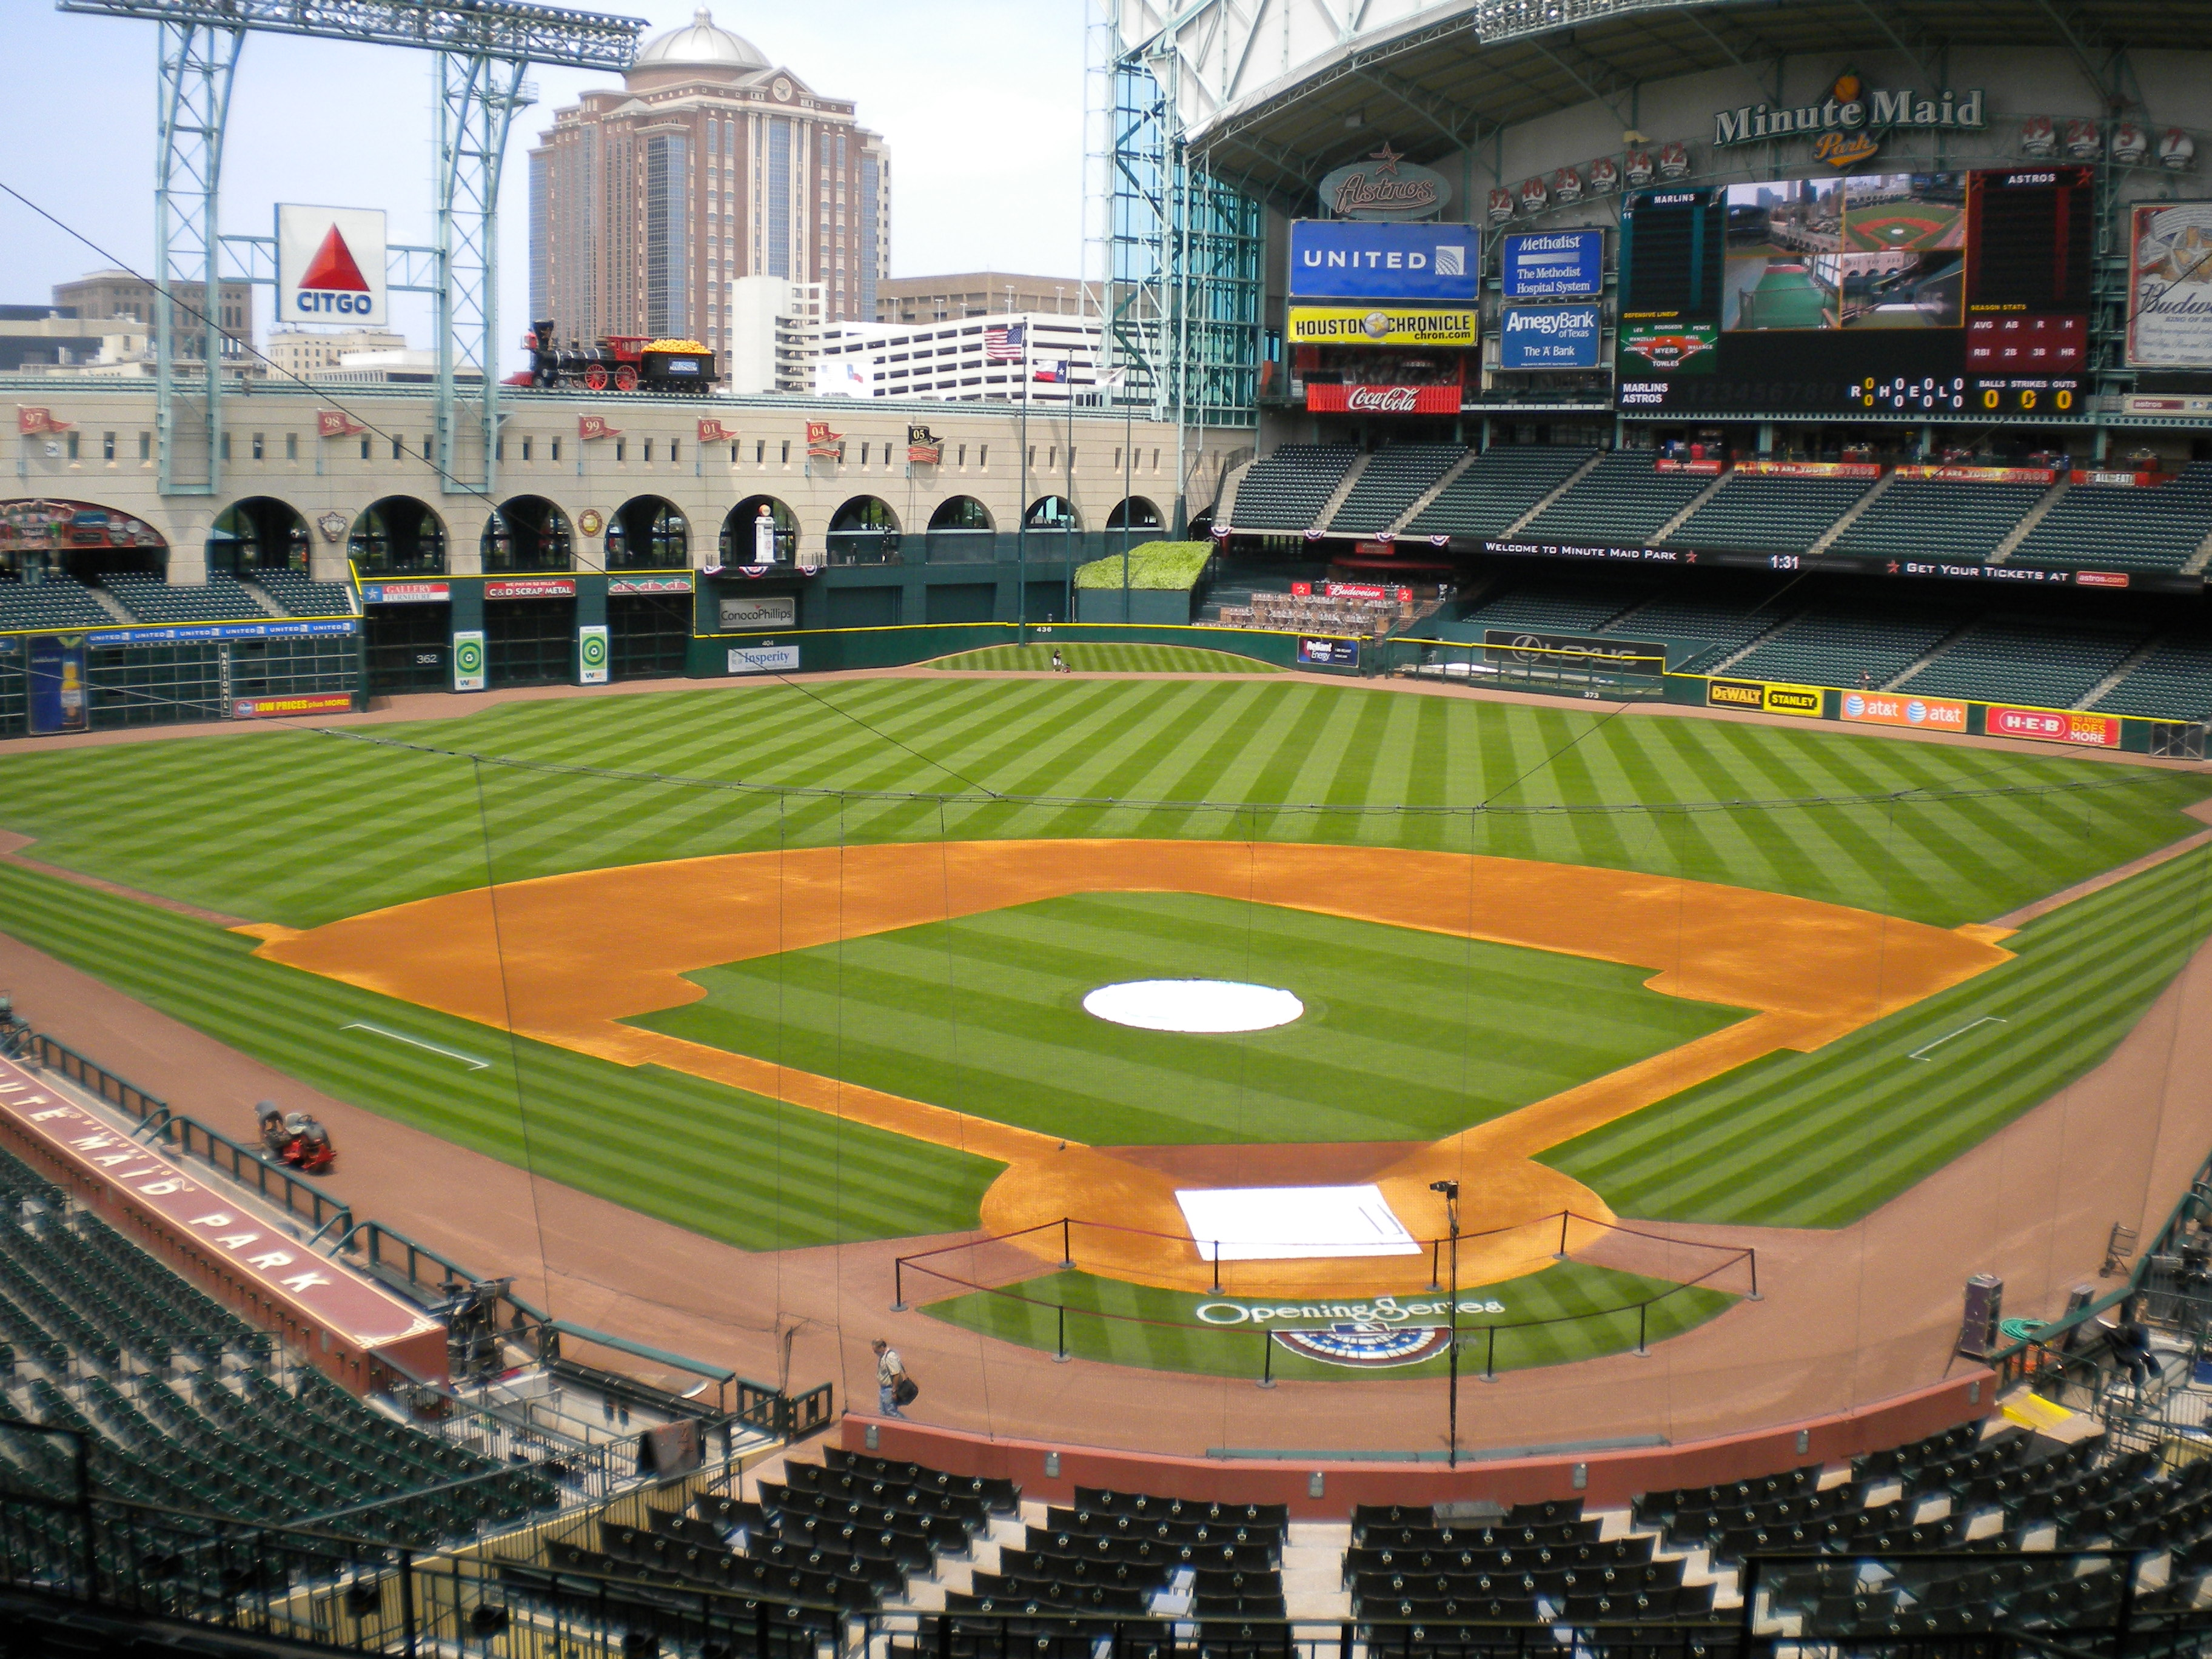 minute maid park houston